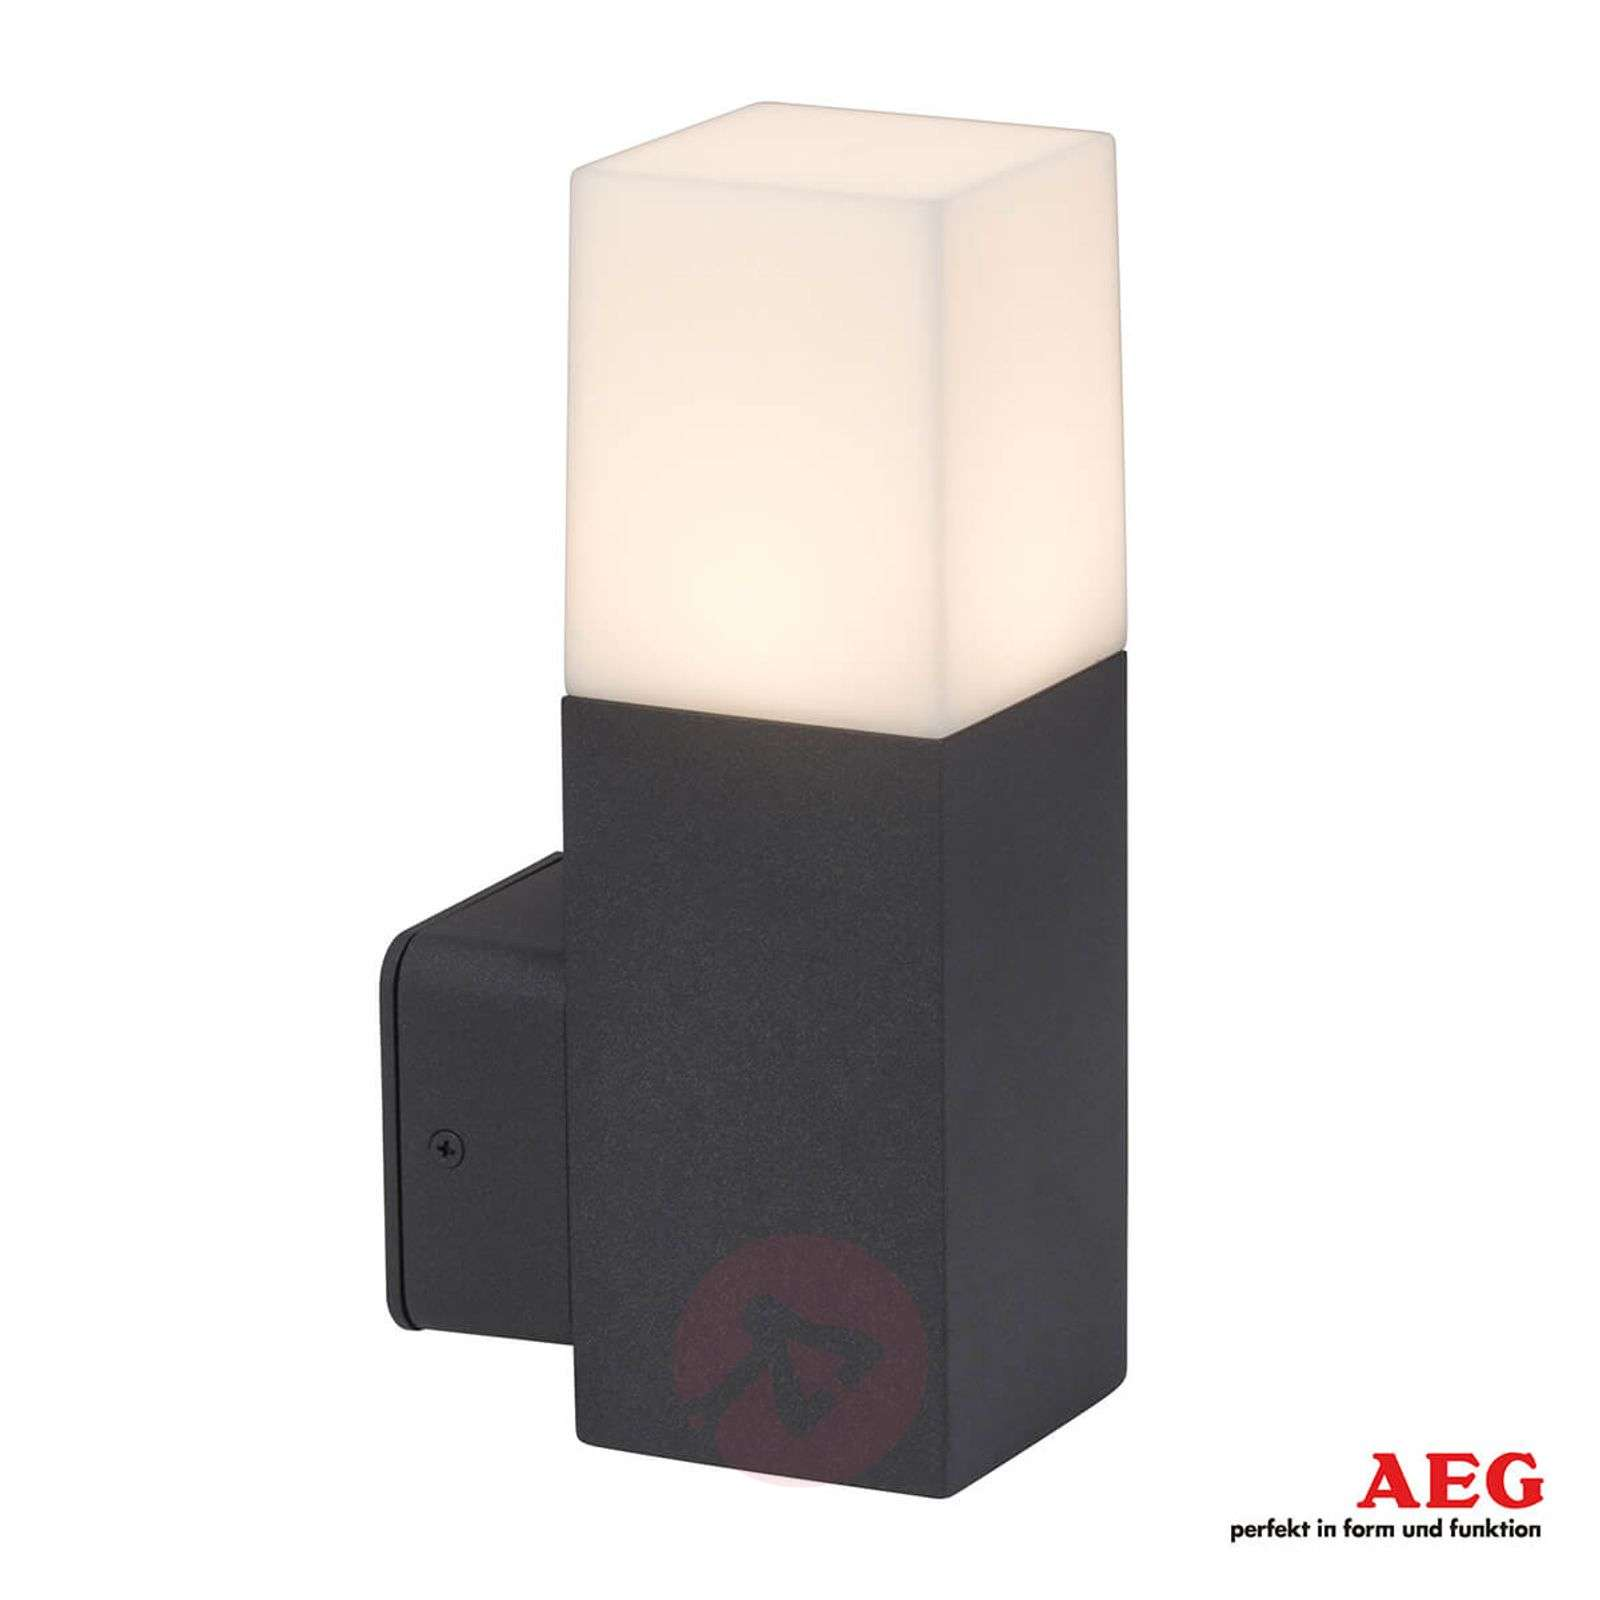 Applique da esterni LED Leguro angolare-3057131-01